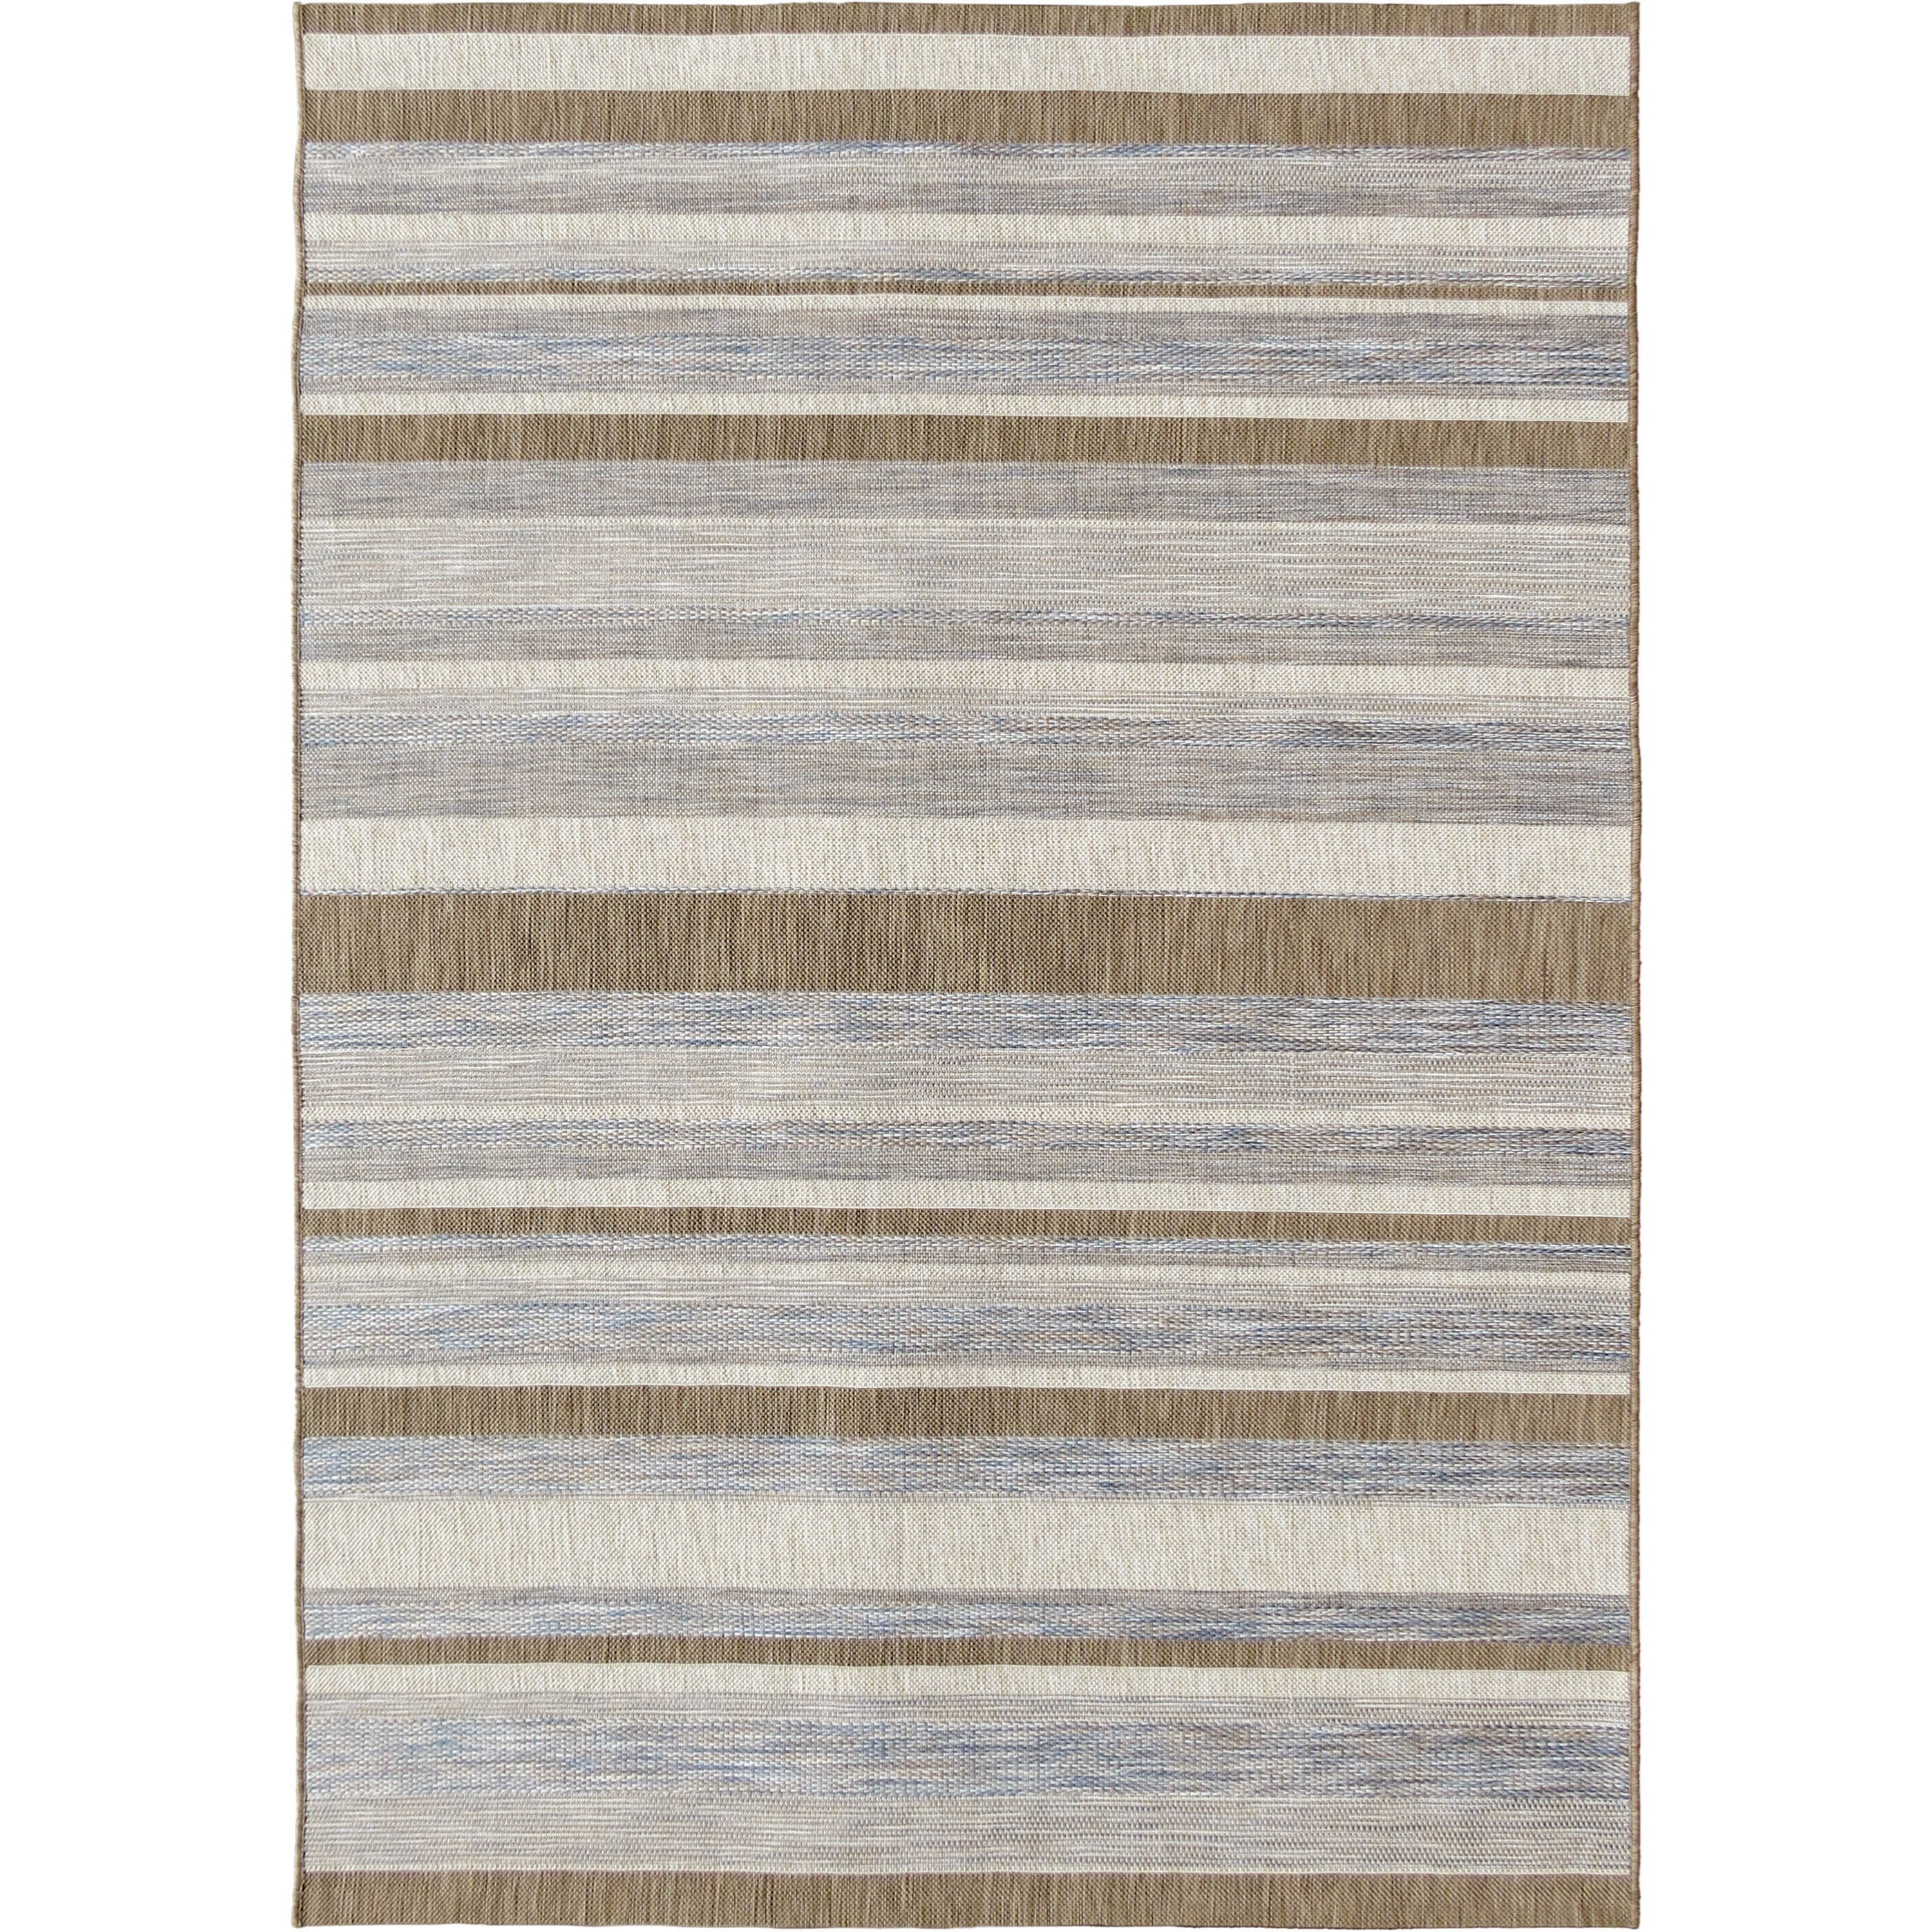 "Casual stripe mink/raw blue 5'1"" x 7'6"" Rug"